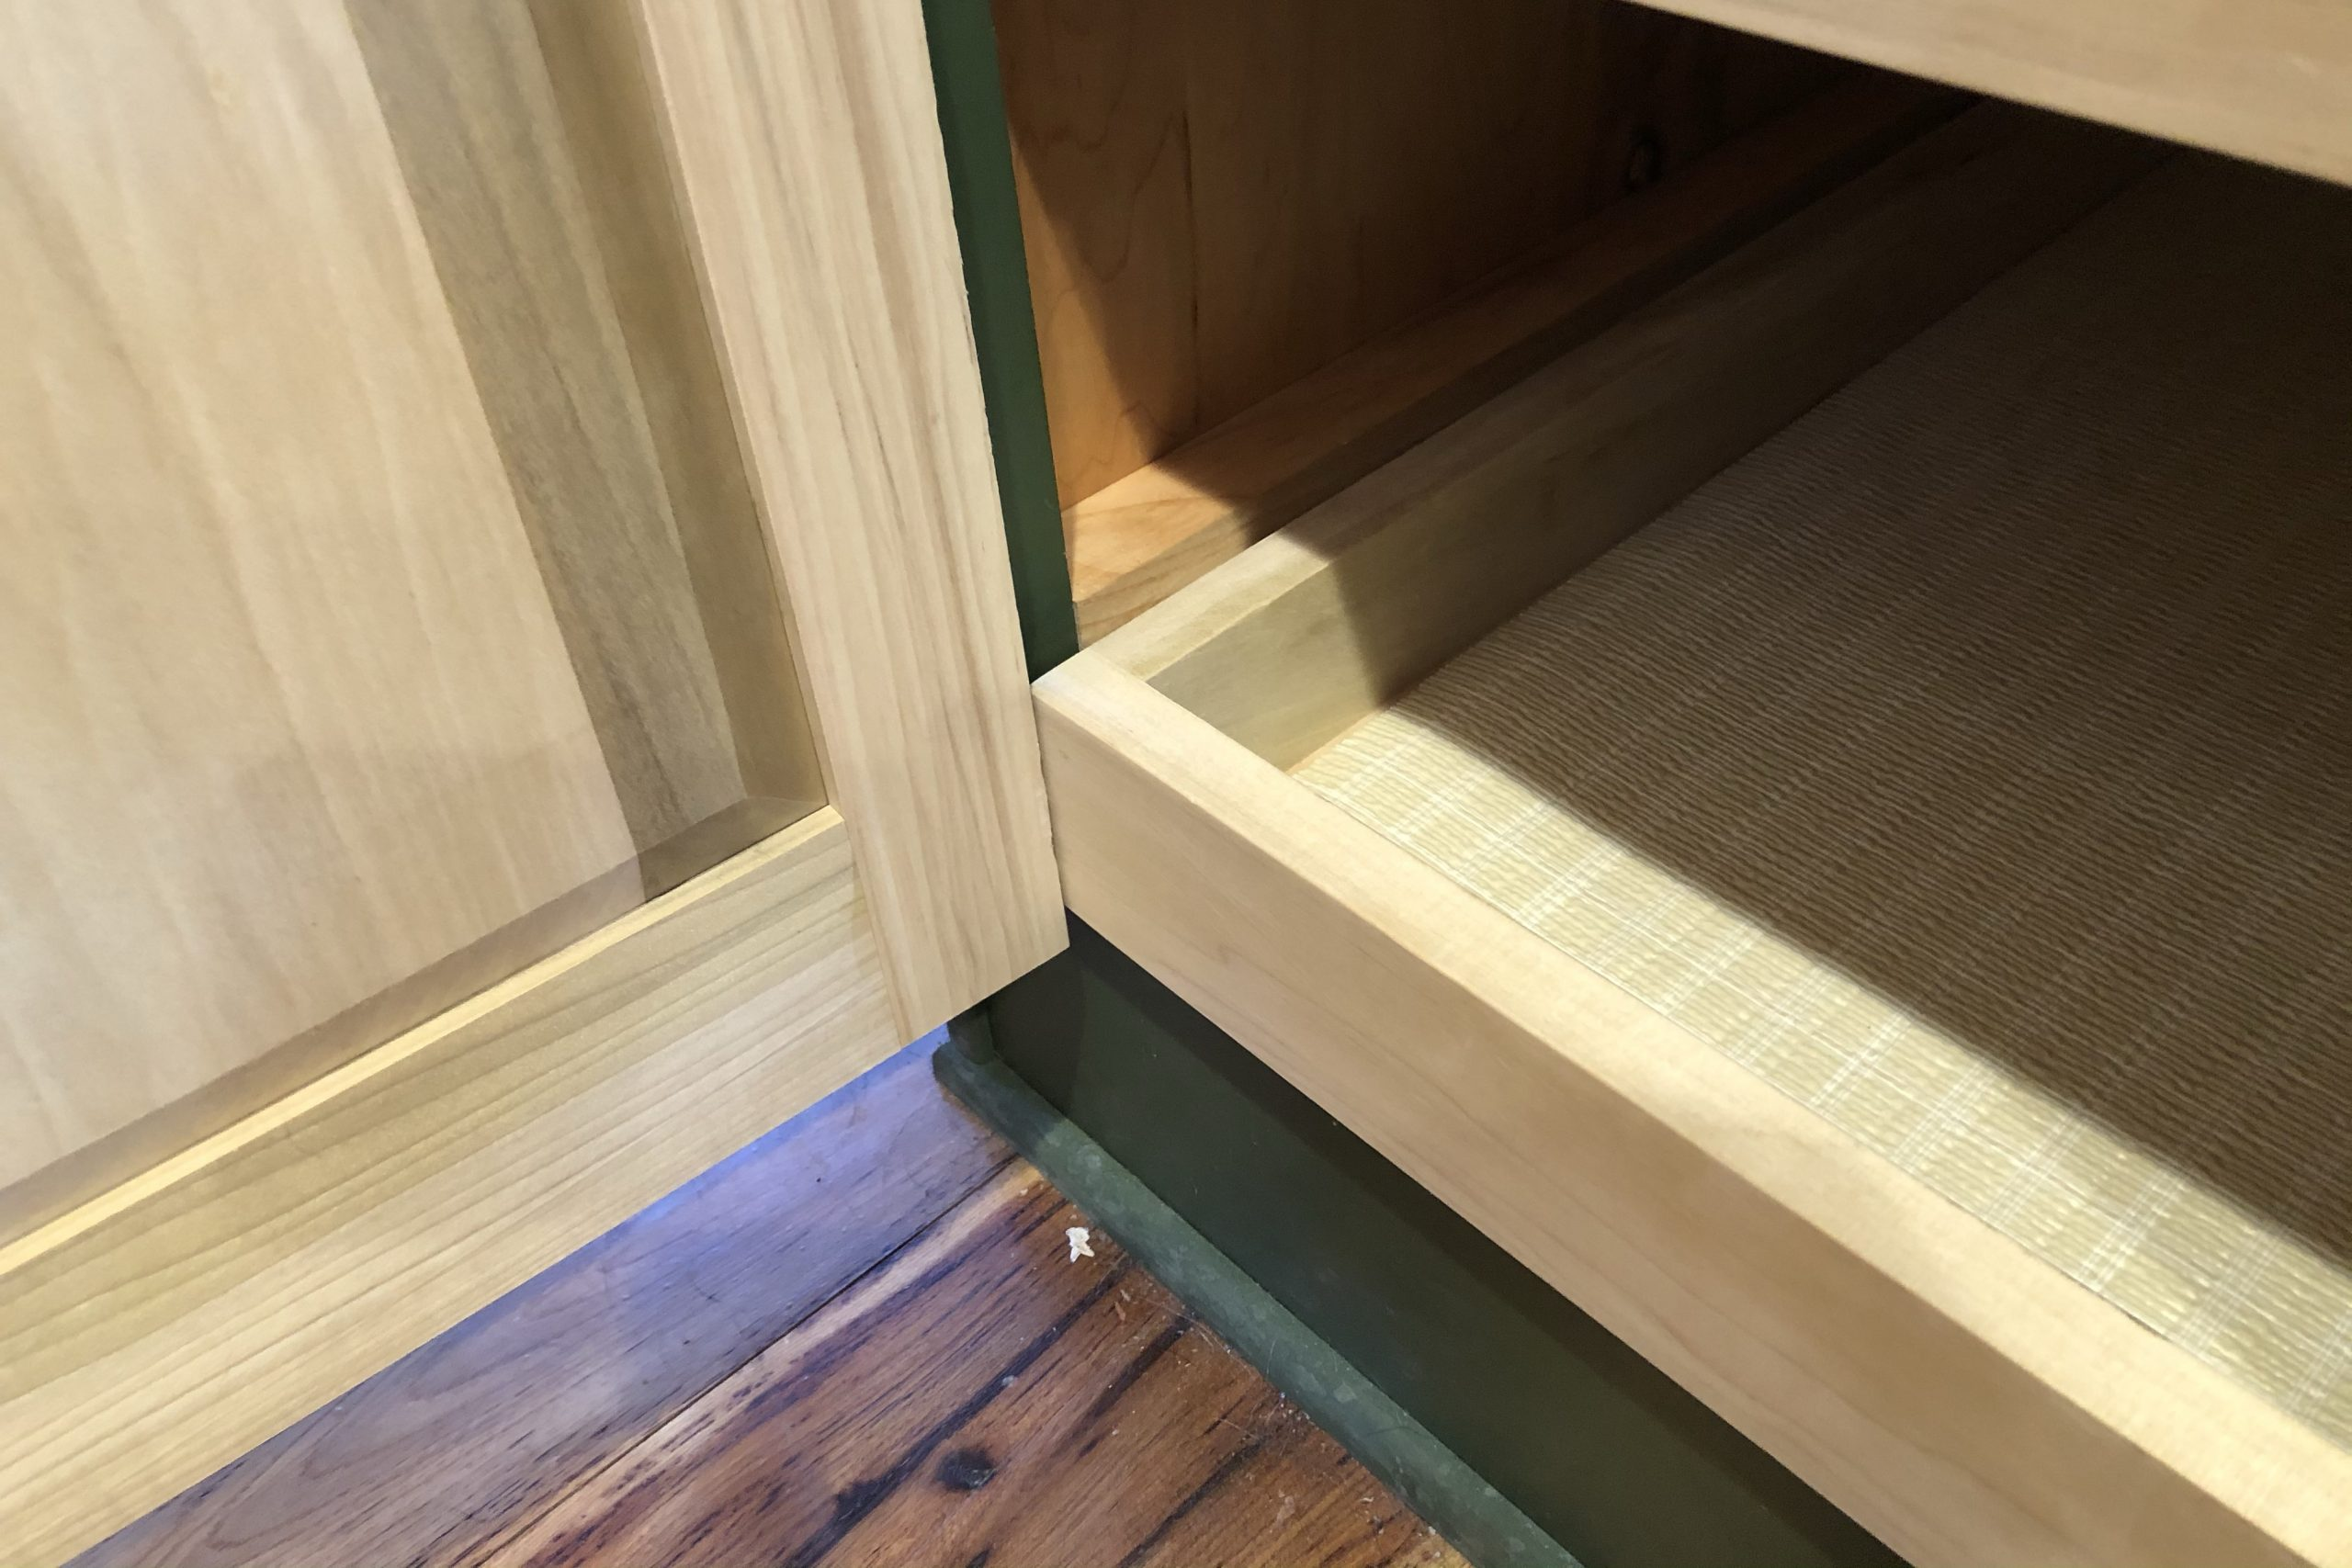 DIY Kitchen Cabinet Pull Out Shelf